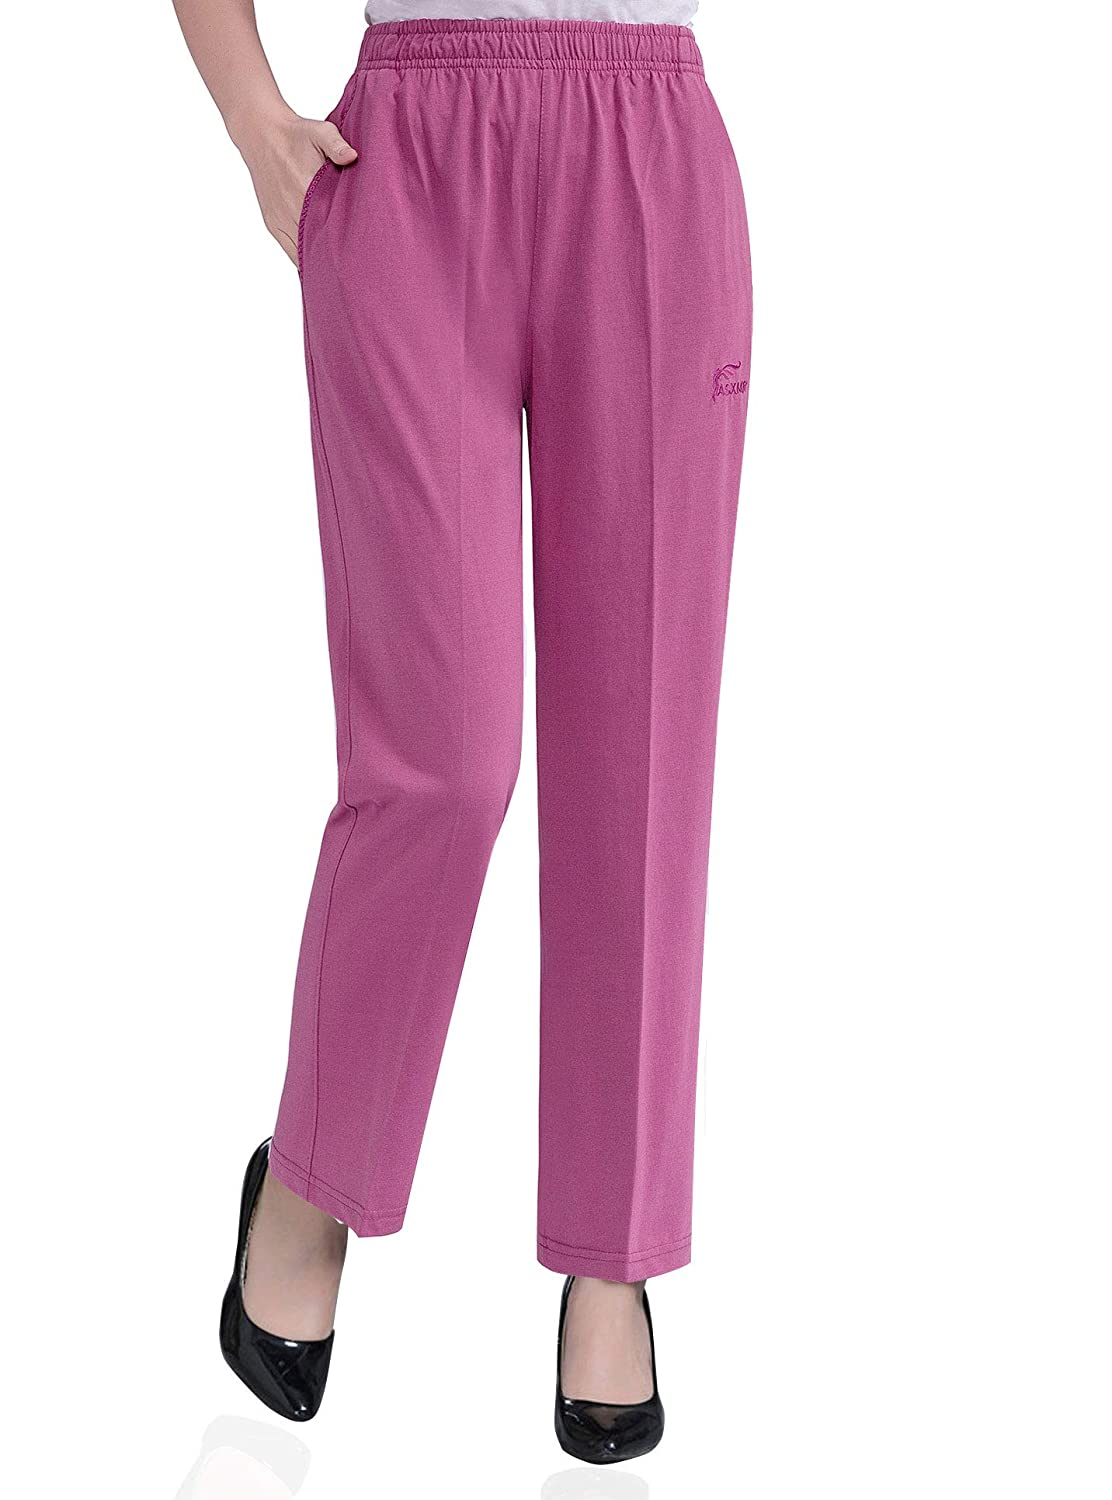 Soojun Womens Stretch Knit Pants Pull On Pants with Elastic Waist